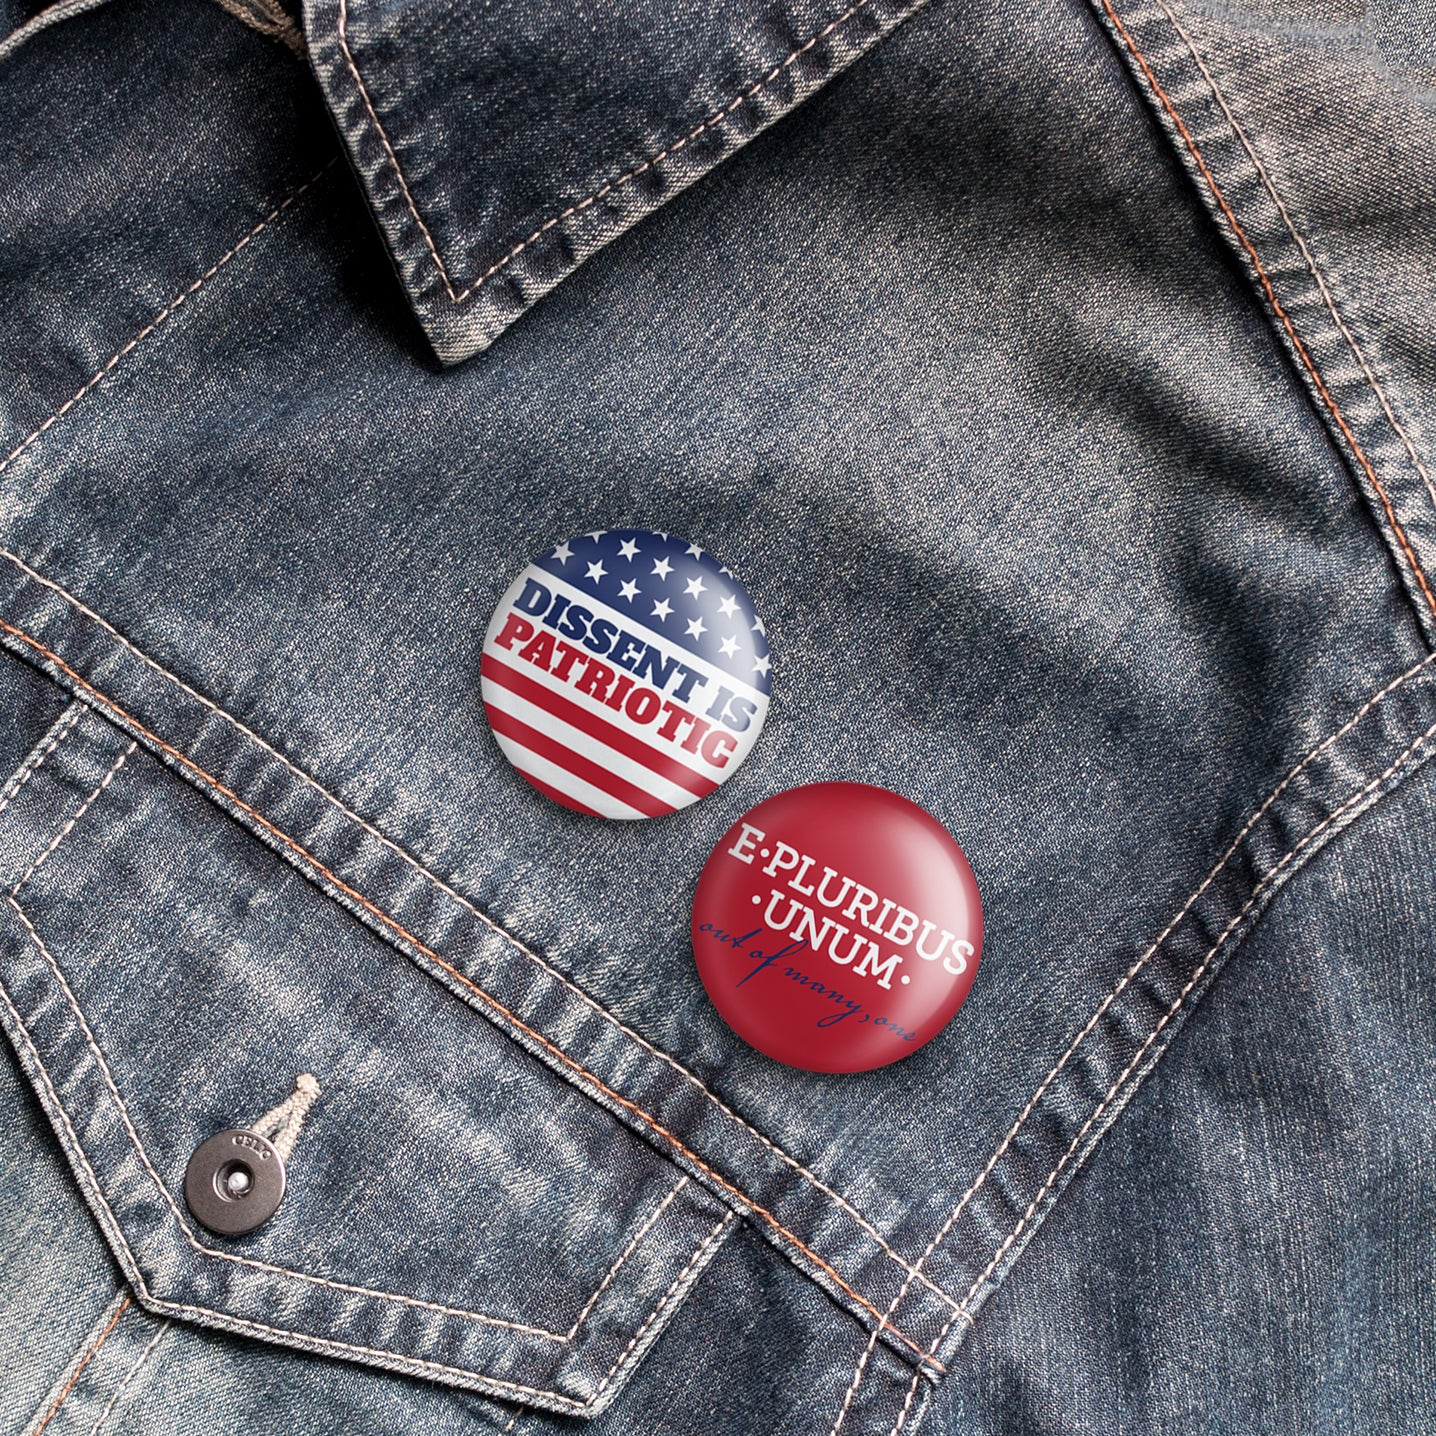 e pluribus unum buttons on denim jacket